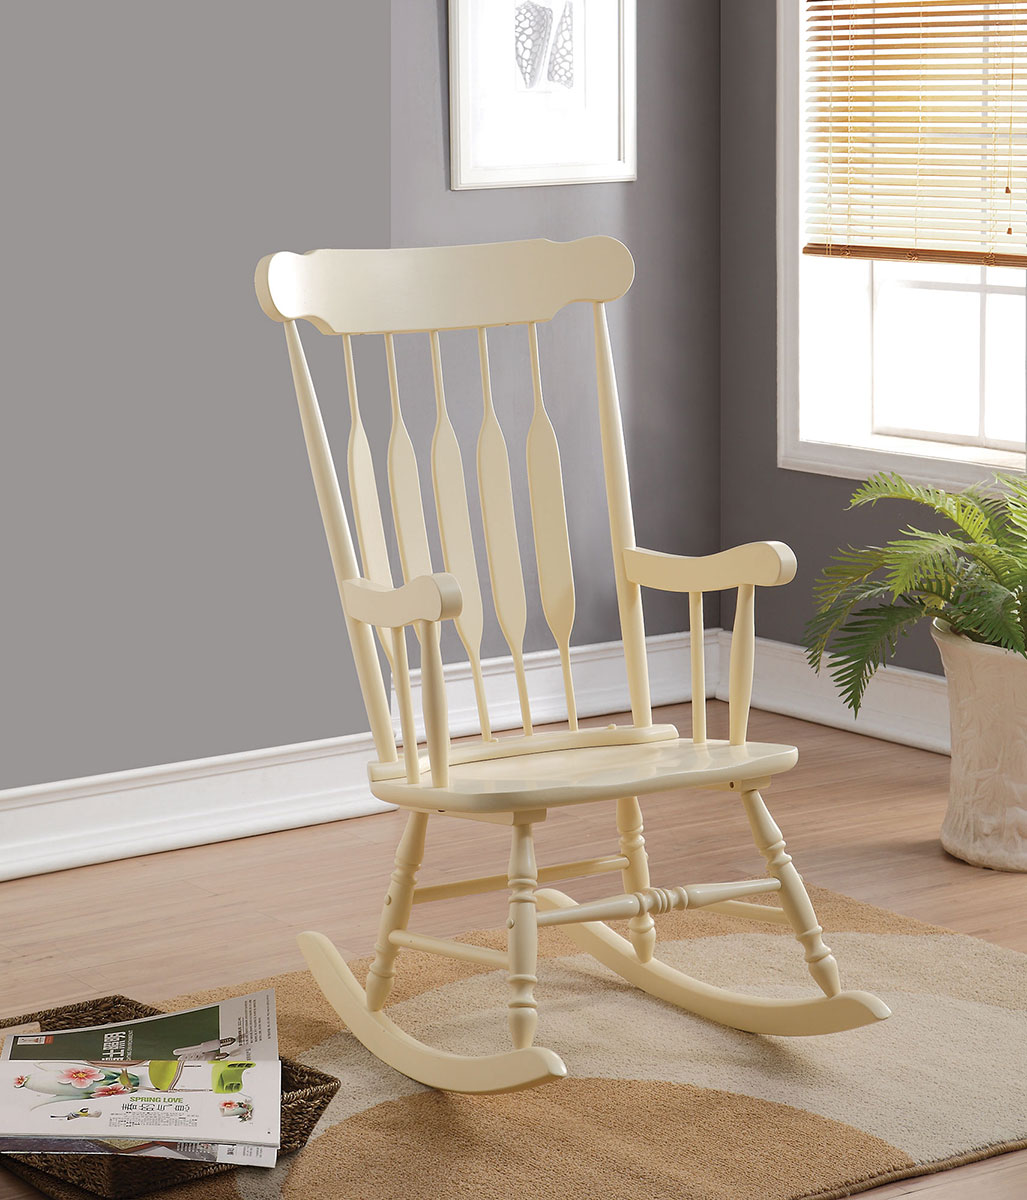 Coaster 601498 Rocking Chair - Yellow